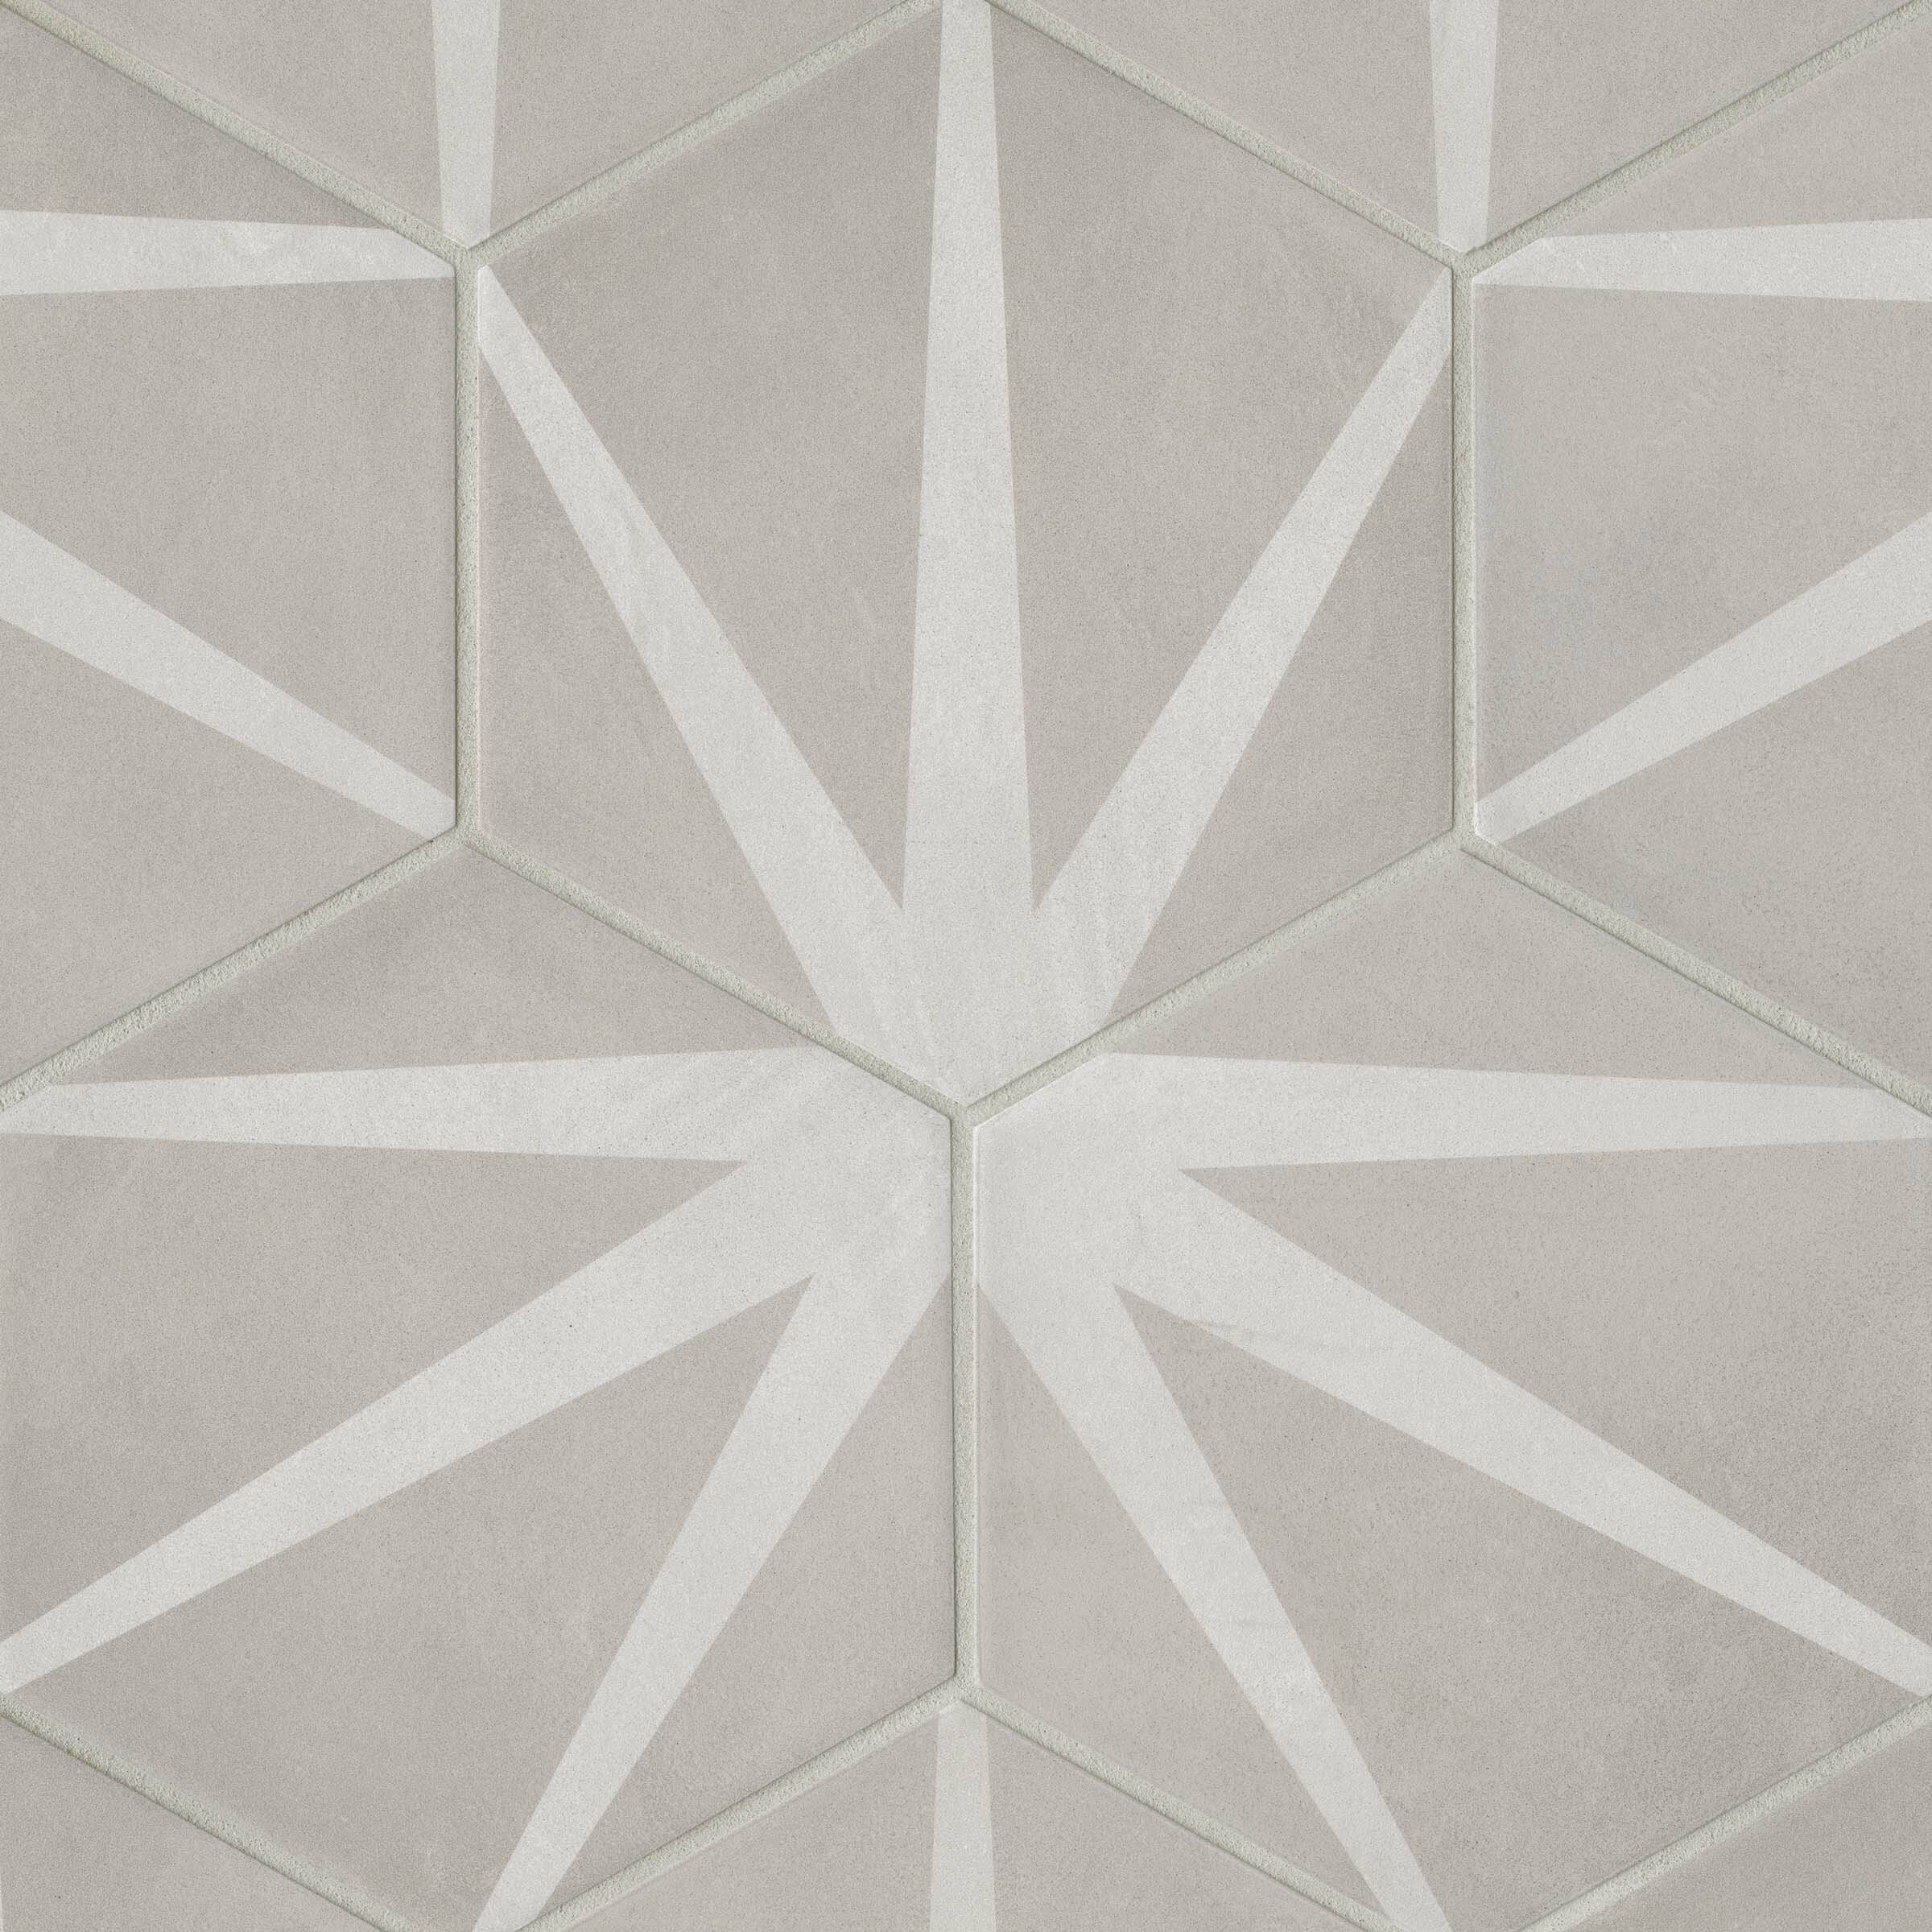 Porcelain Patterned Wall Floor Tile